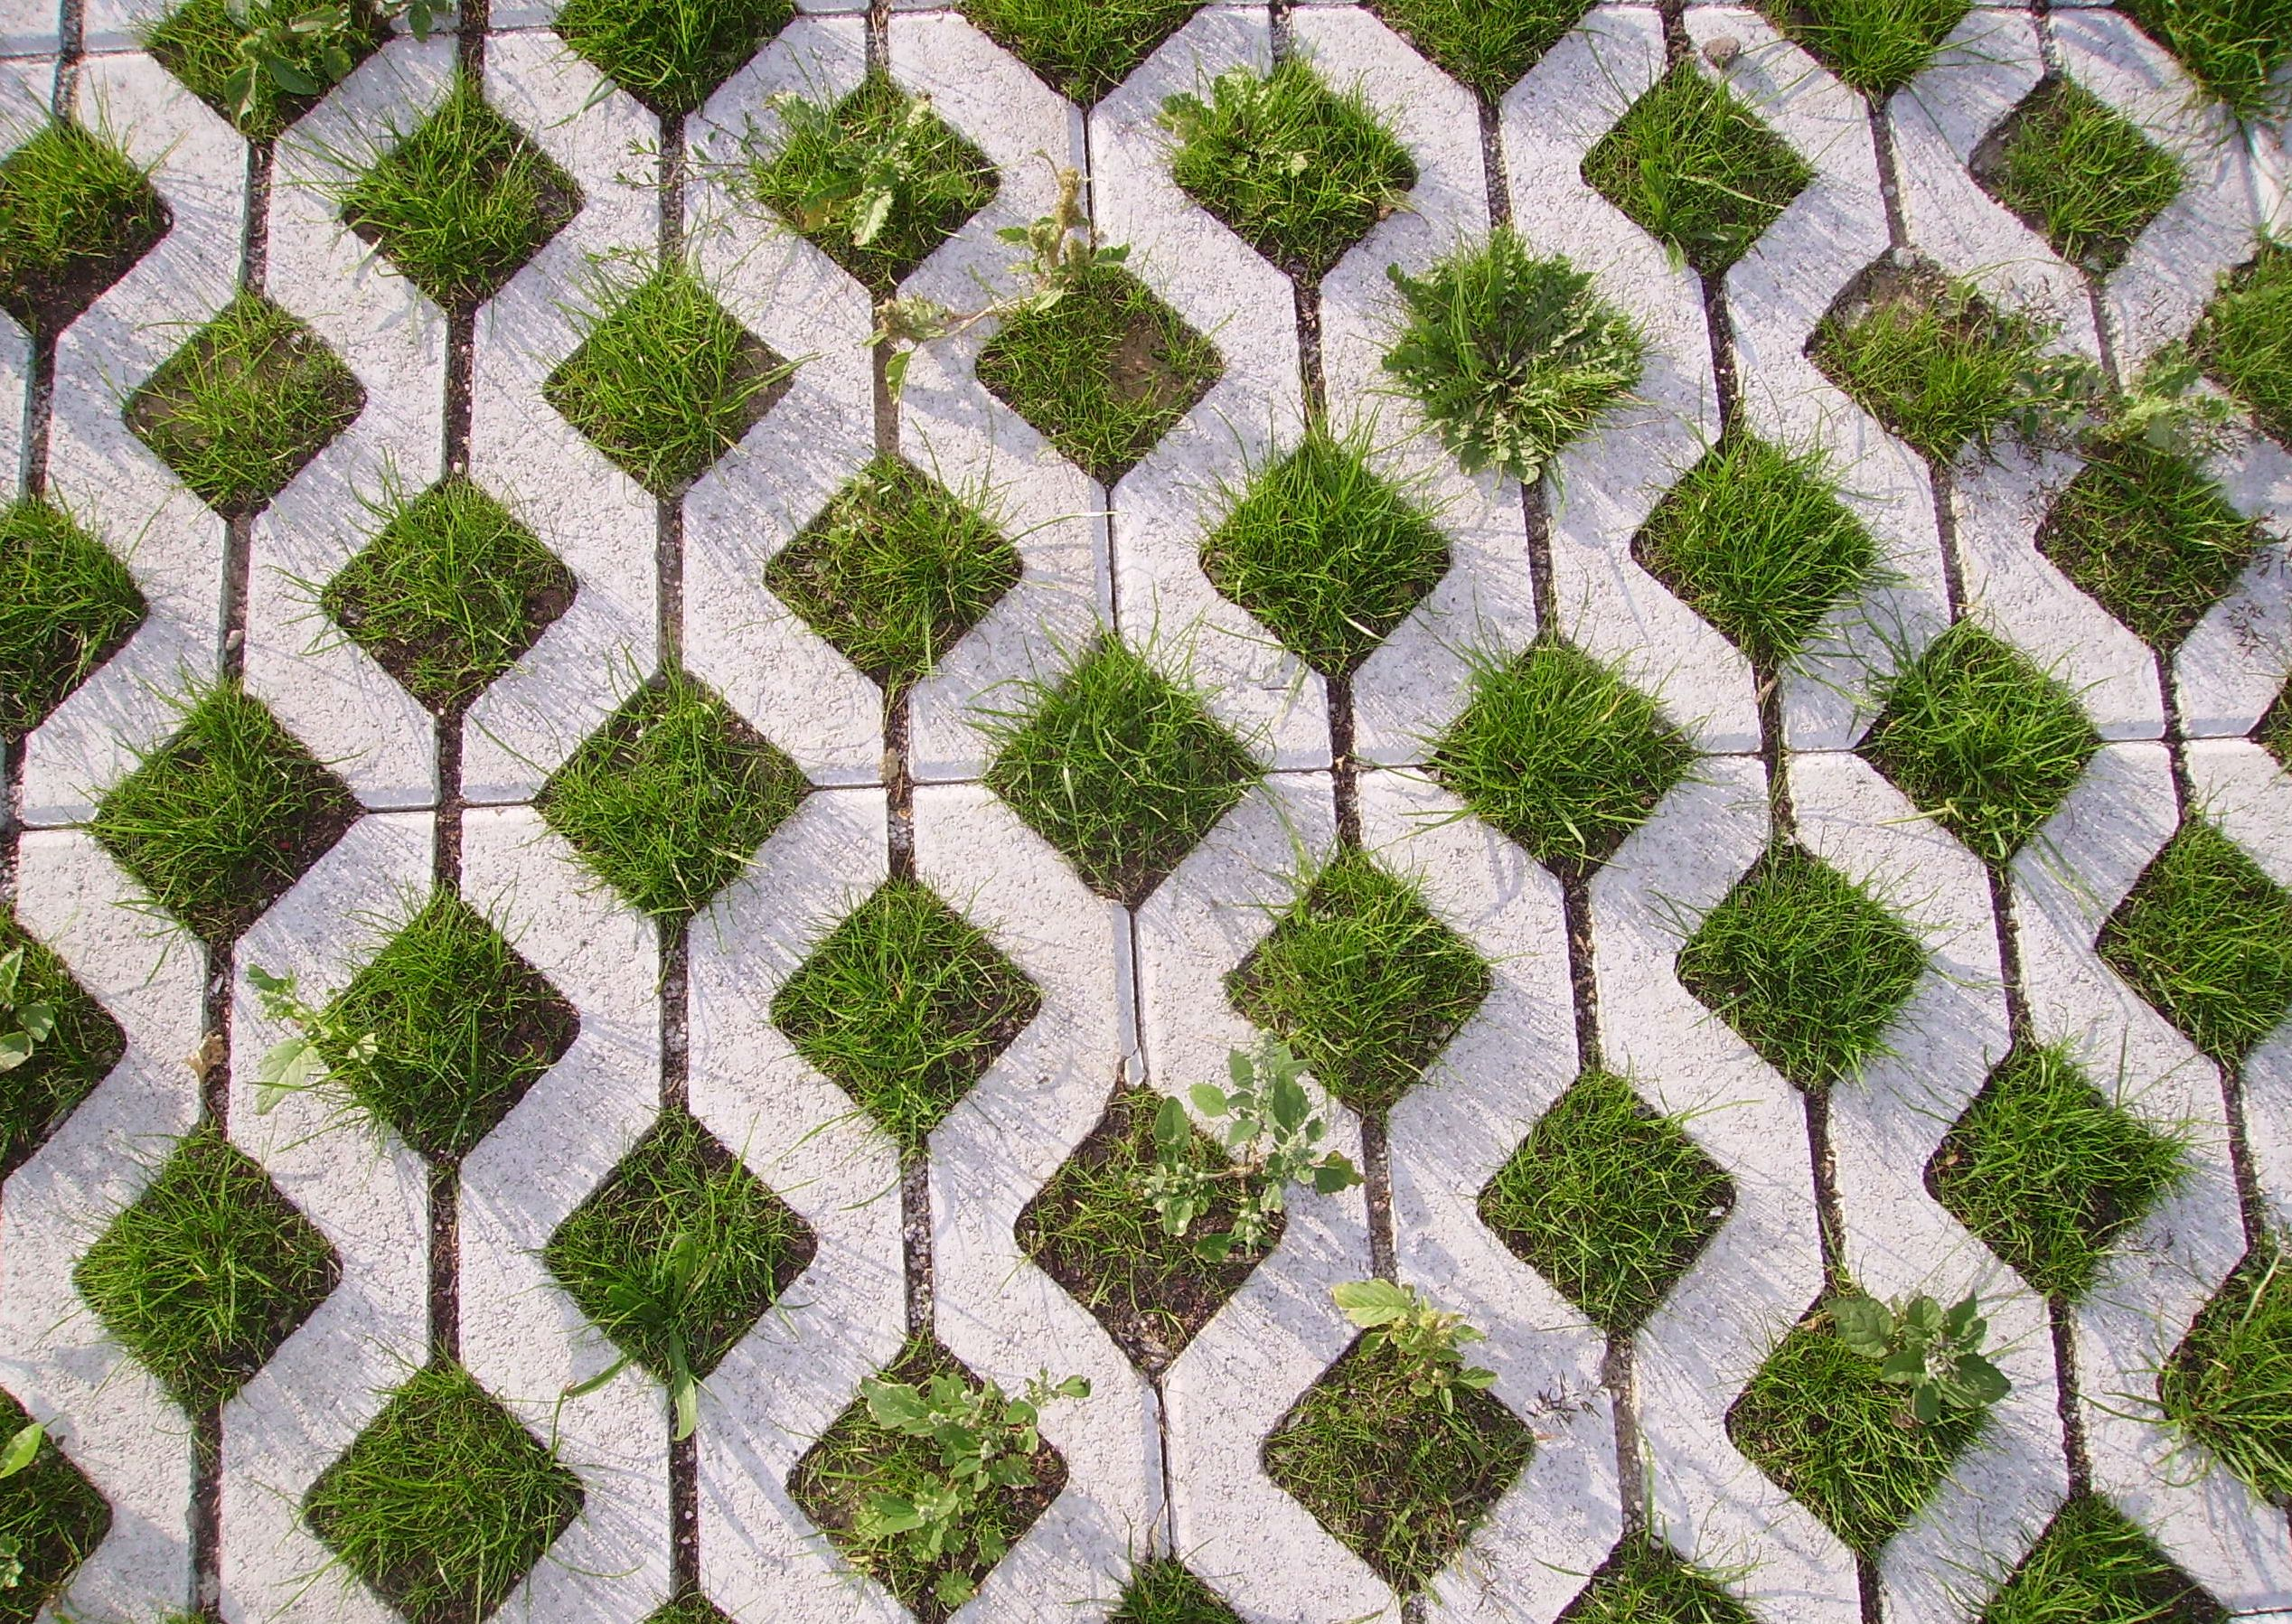 5 Of The Smartest Drainage Systems Grass Pavers Permeable Paving Permeable Driveway